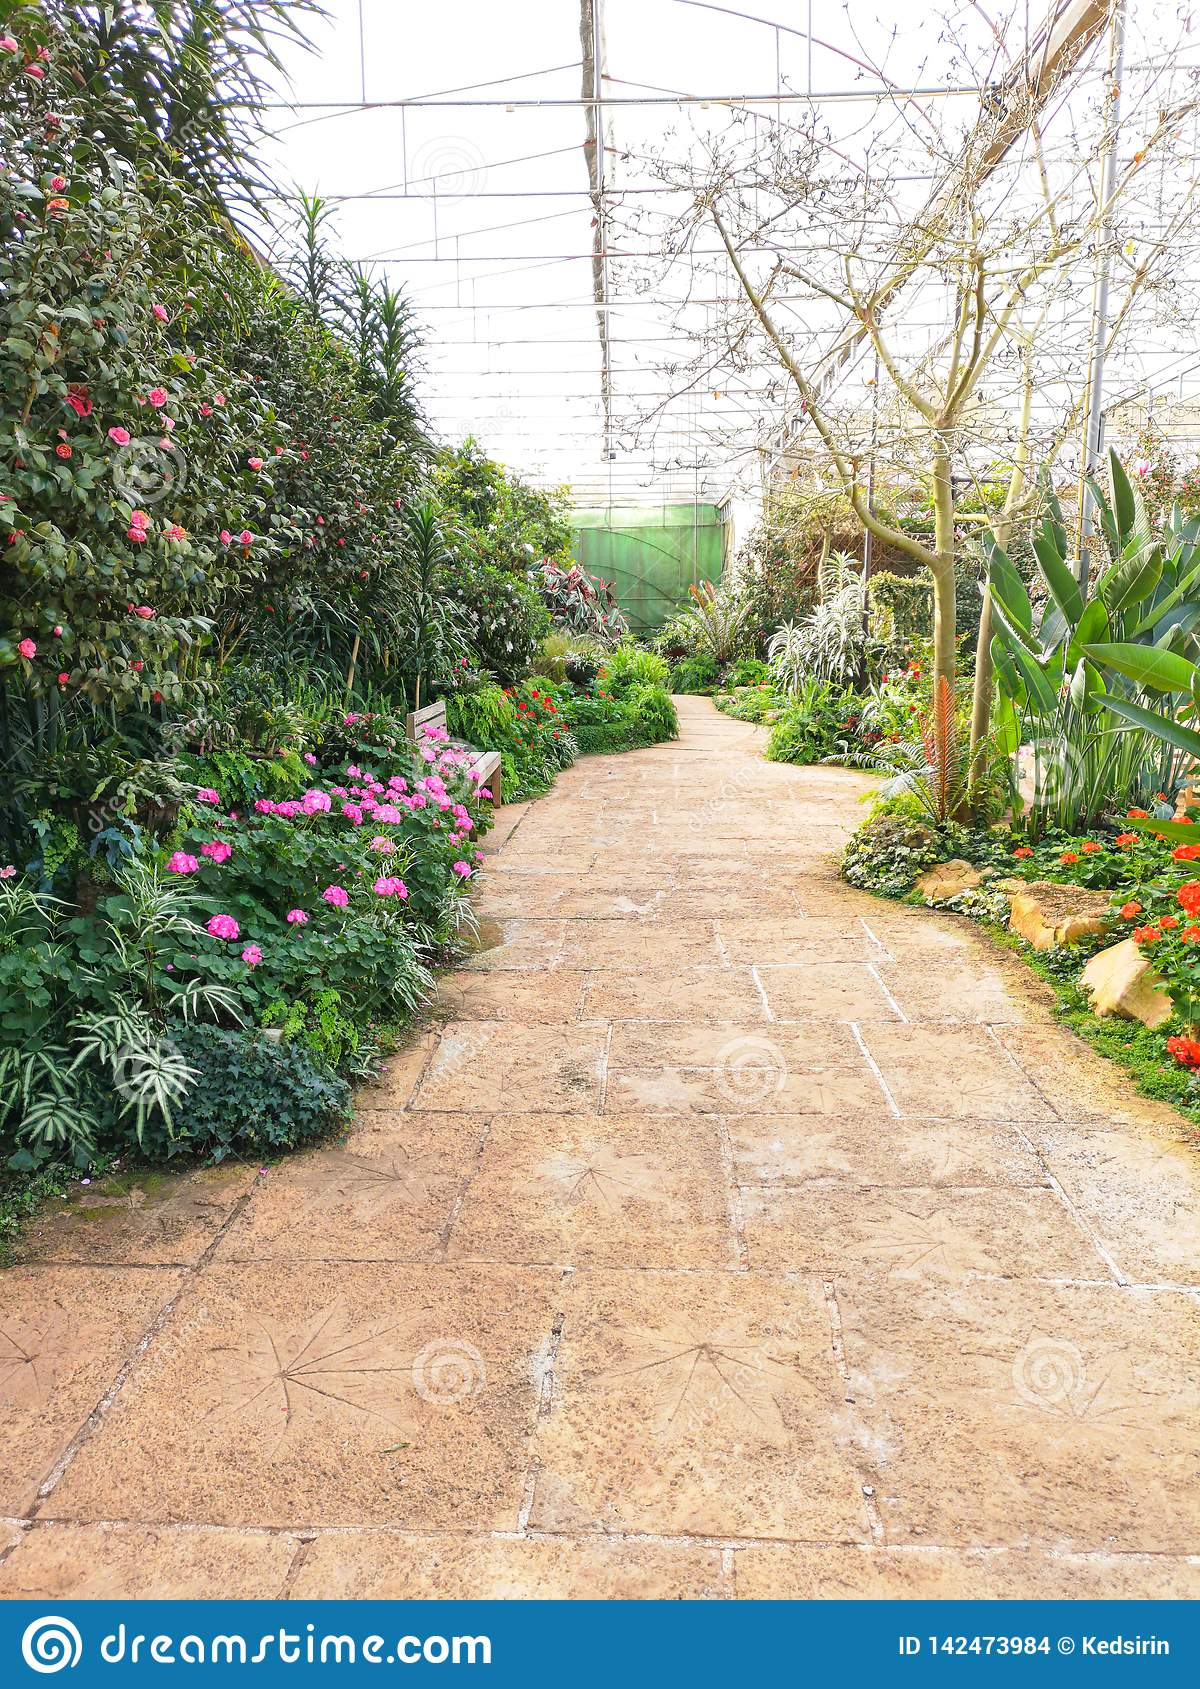 Beautiful Flowers And Plants In Garden Designs With Walkway Stock